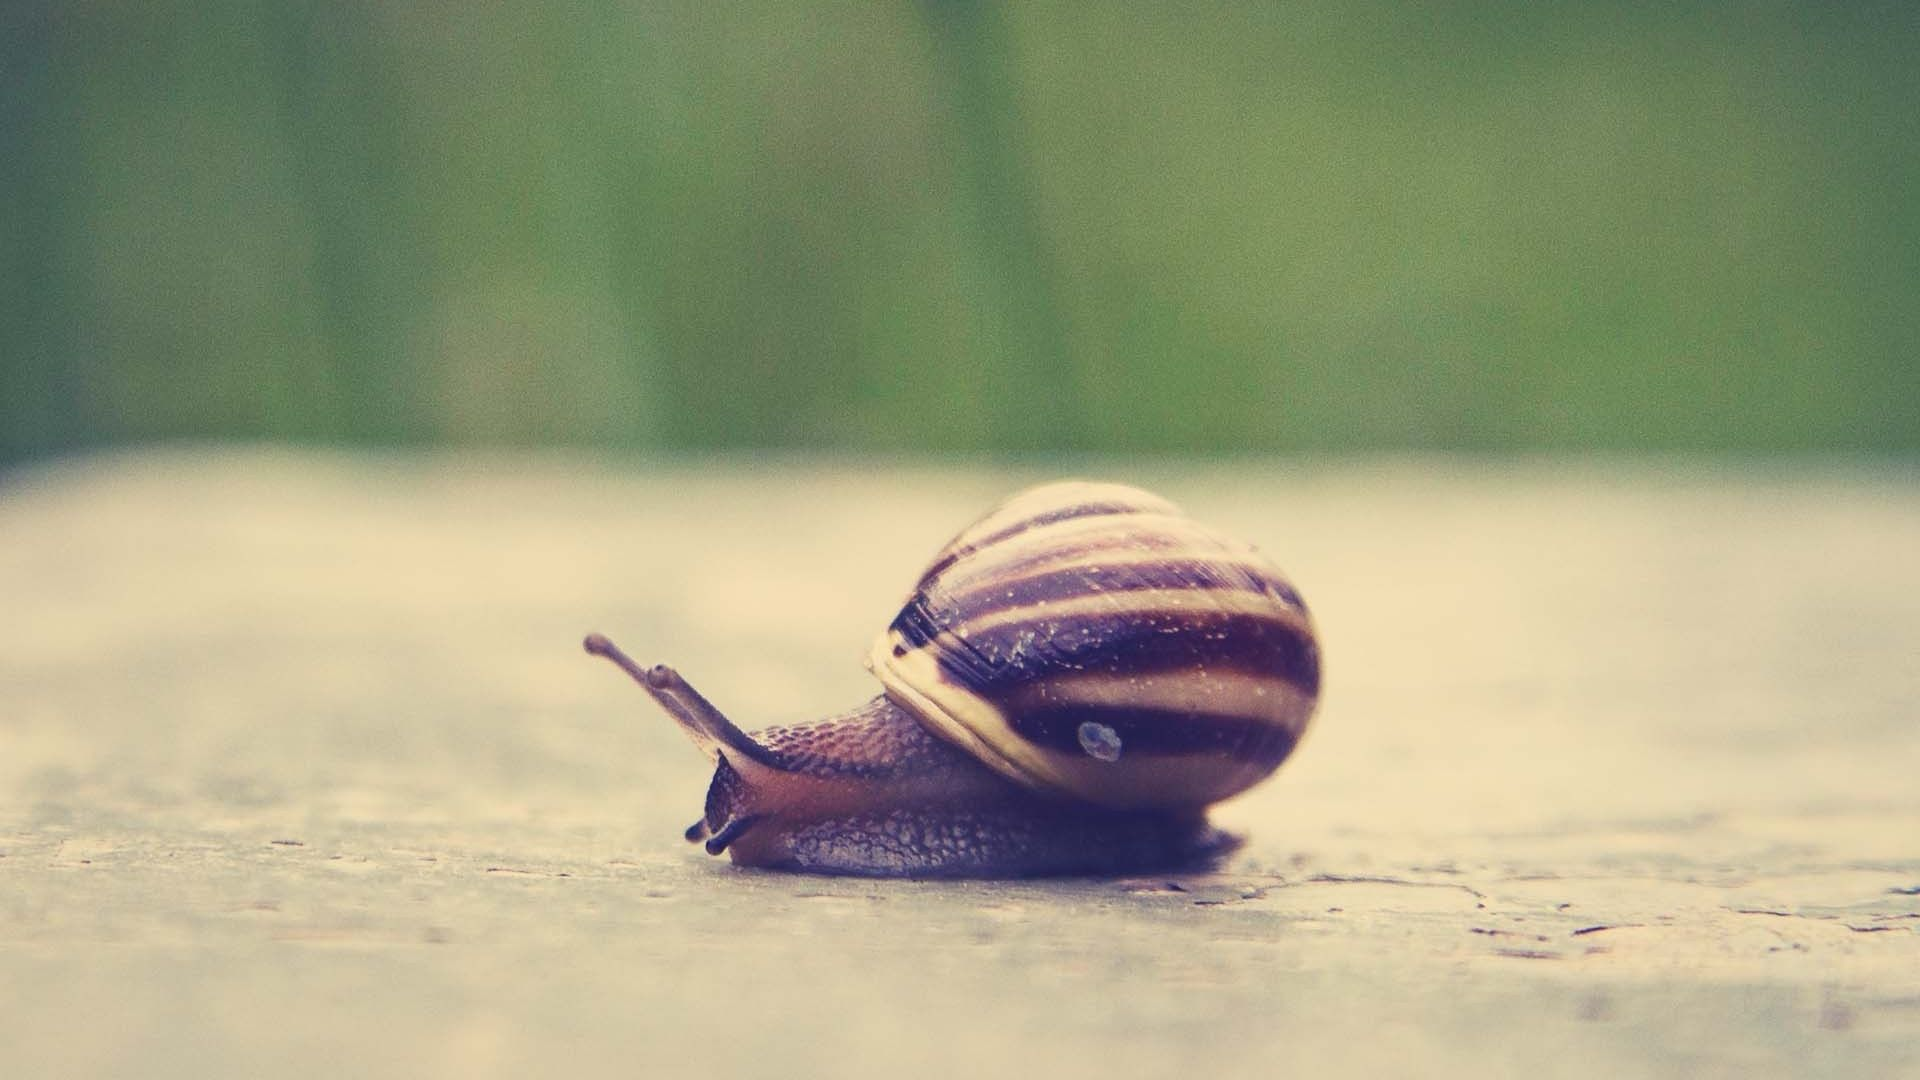 Snails And Mollusks Wallpapers, Desktop 4K High Quality Image, W